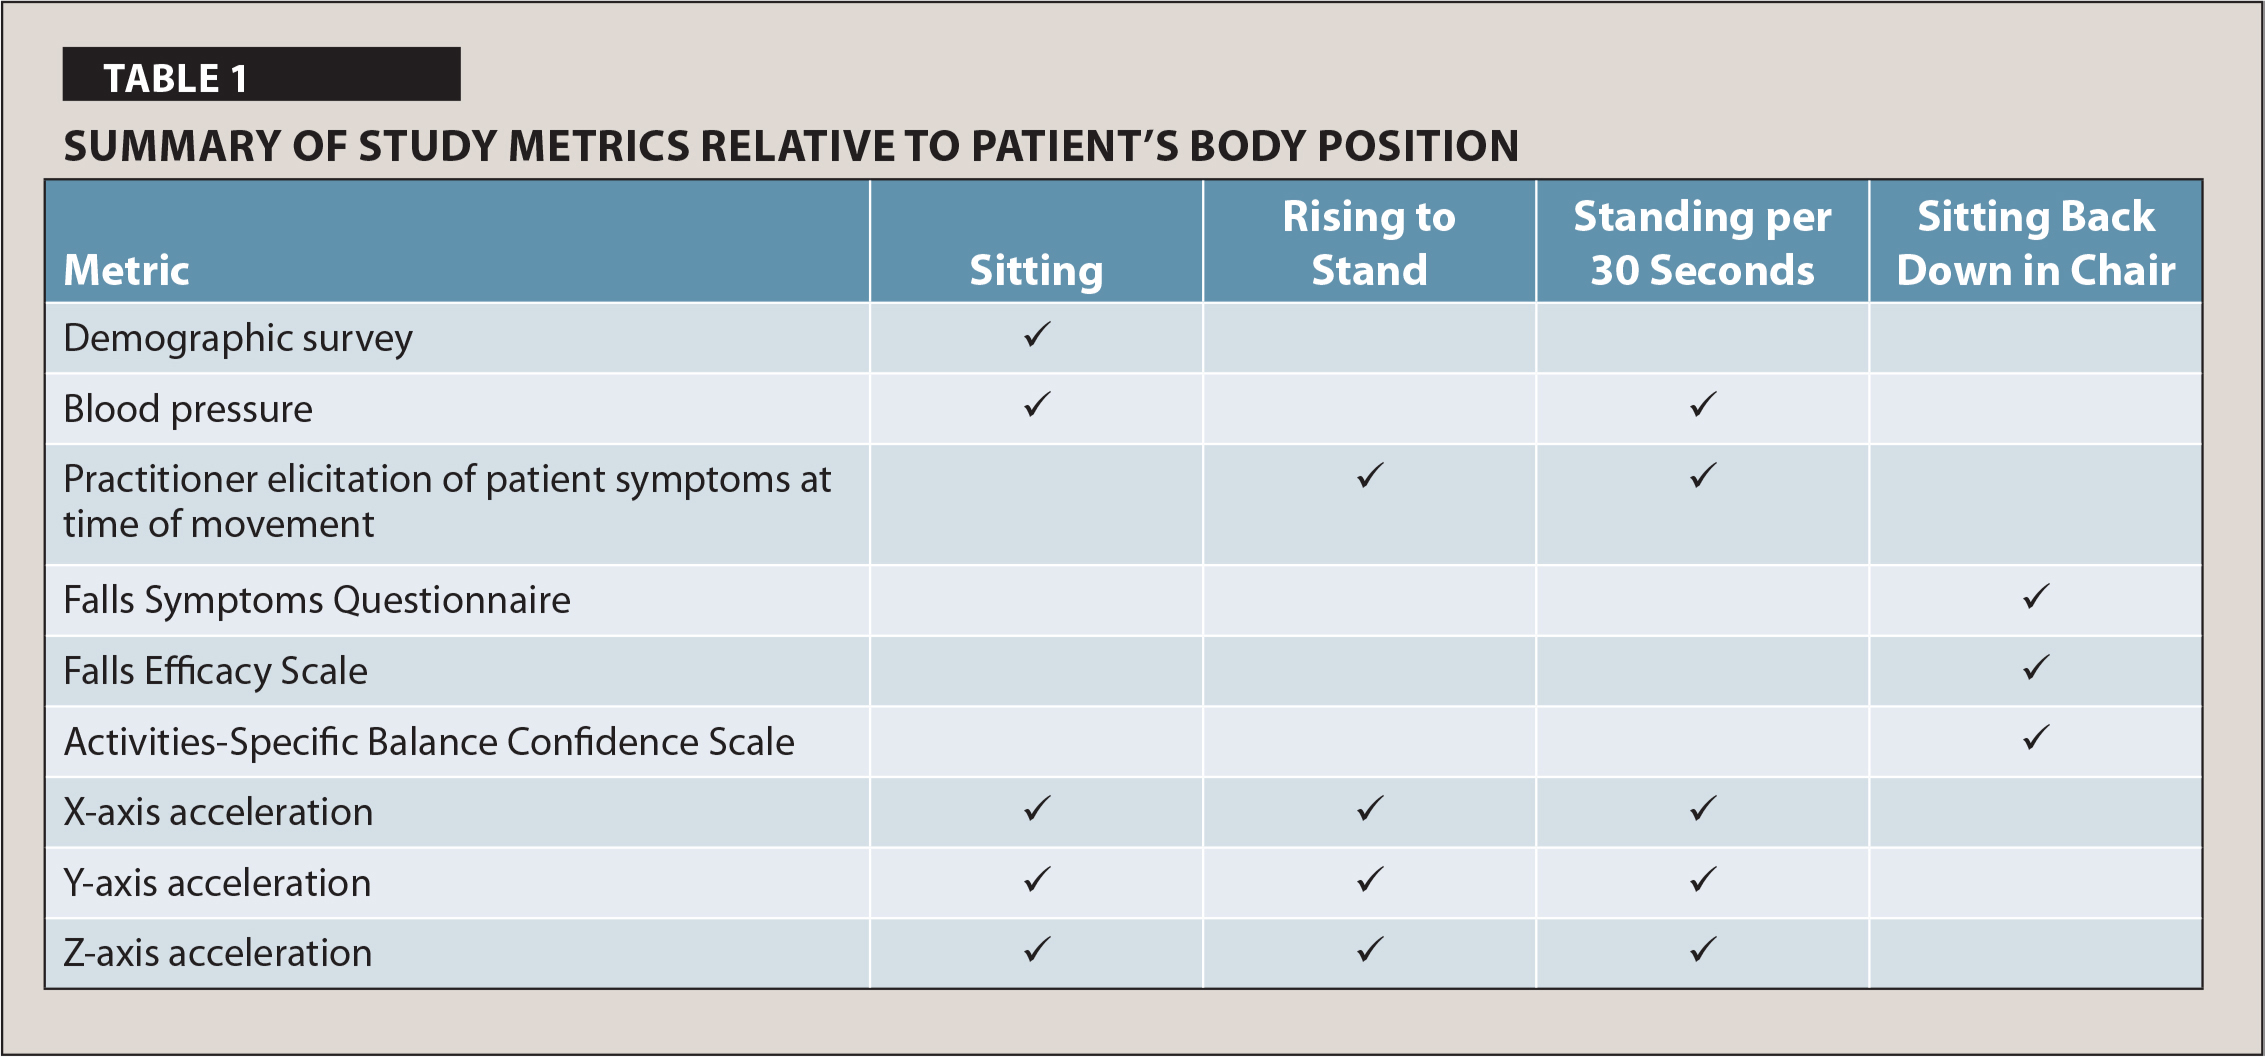 Summary of Study Metrics Relative to Patient's Body Position